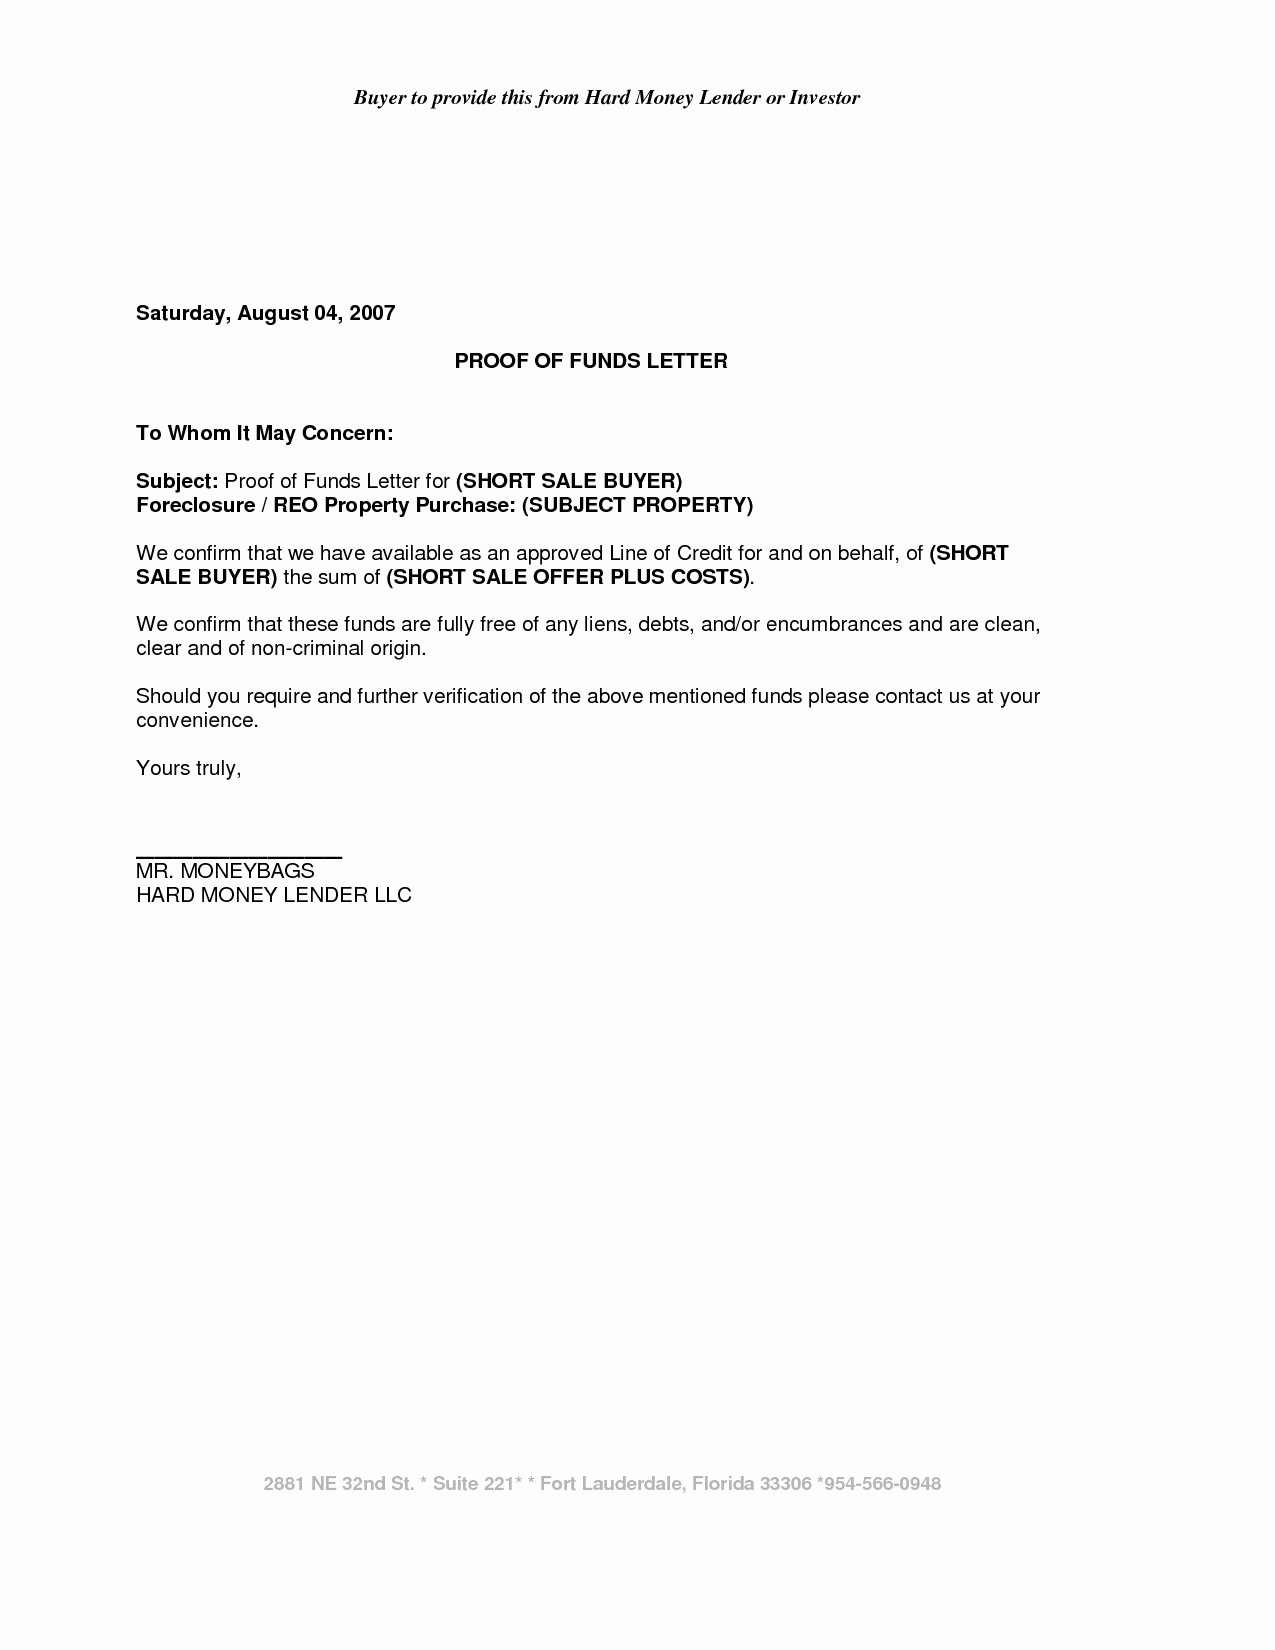 Sample Proof Of Funds Letter Template Fresh School Secretary Cover Letter Template Examples